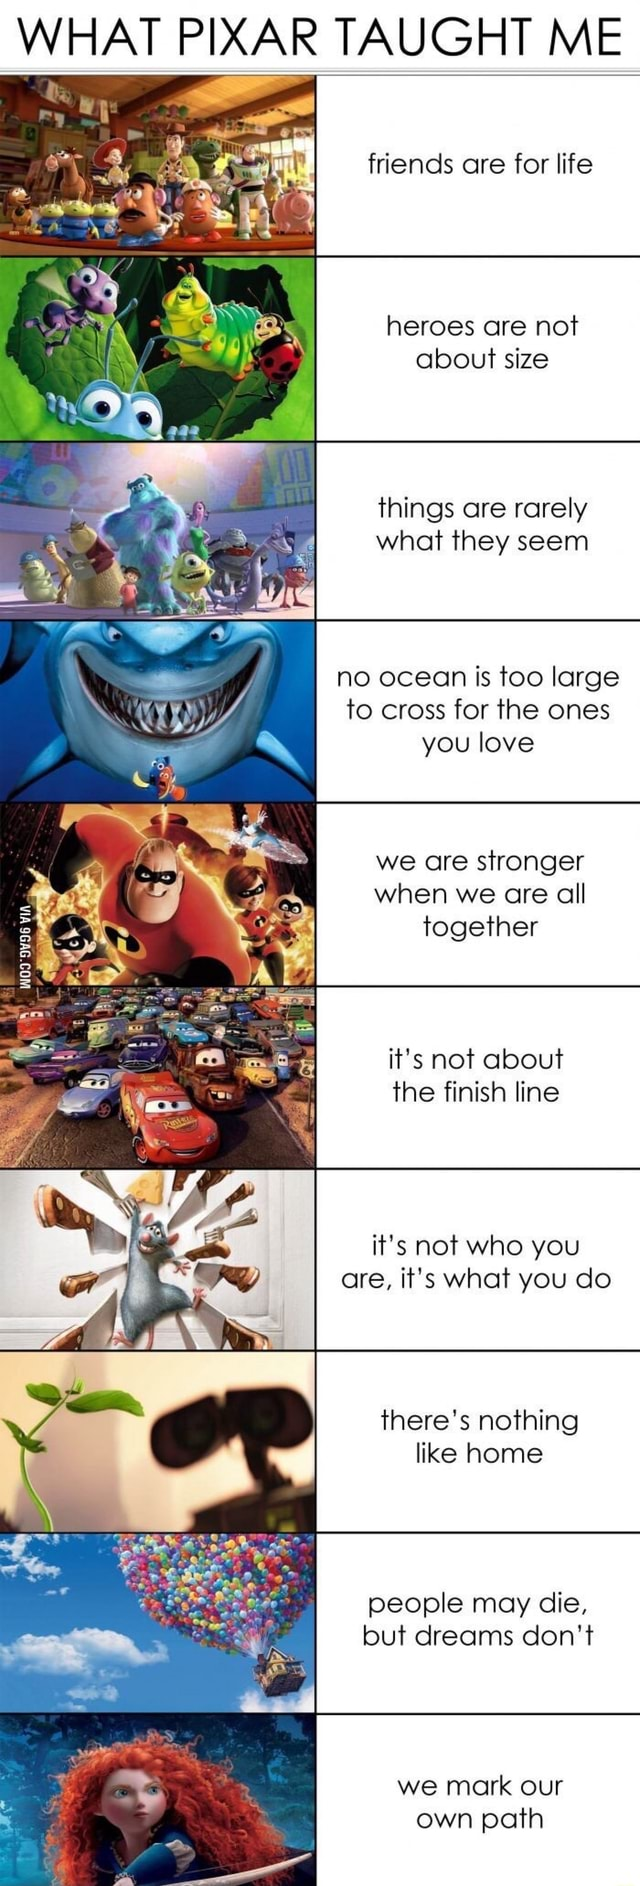 WHAT PIXAR TAUGHT ME friends are for life heroes are not about size things are rarely what they seem no ocean is too large to cross for the ones you love Cad we are stronger when we are all together it's not about the finish line it's not who you are, it's what you do BS there's nothing like home people may die, but dreams do not we mark our own path memes